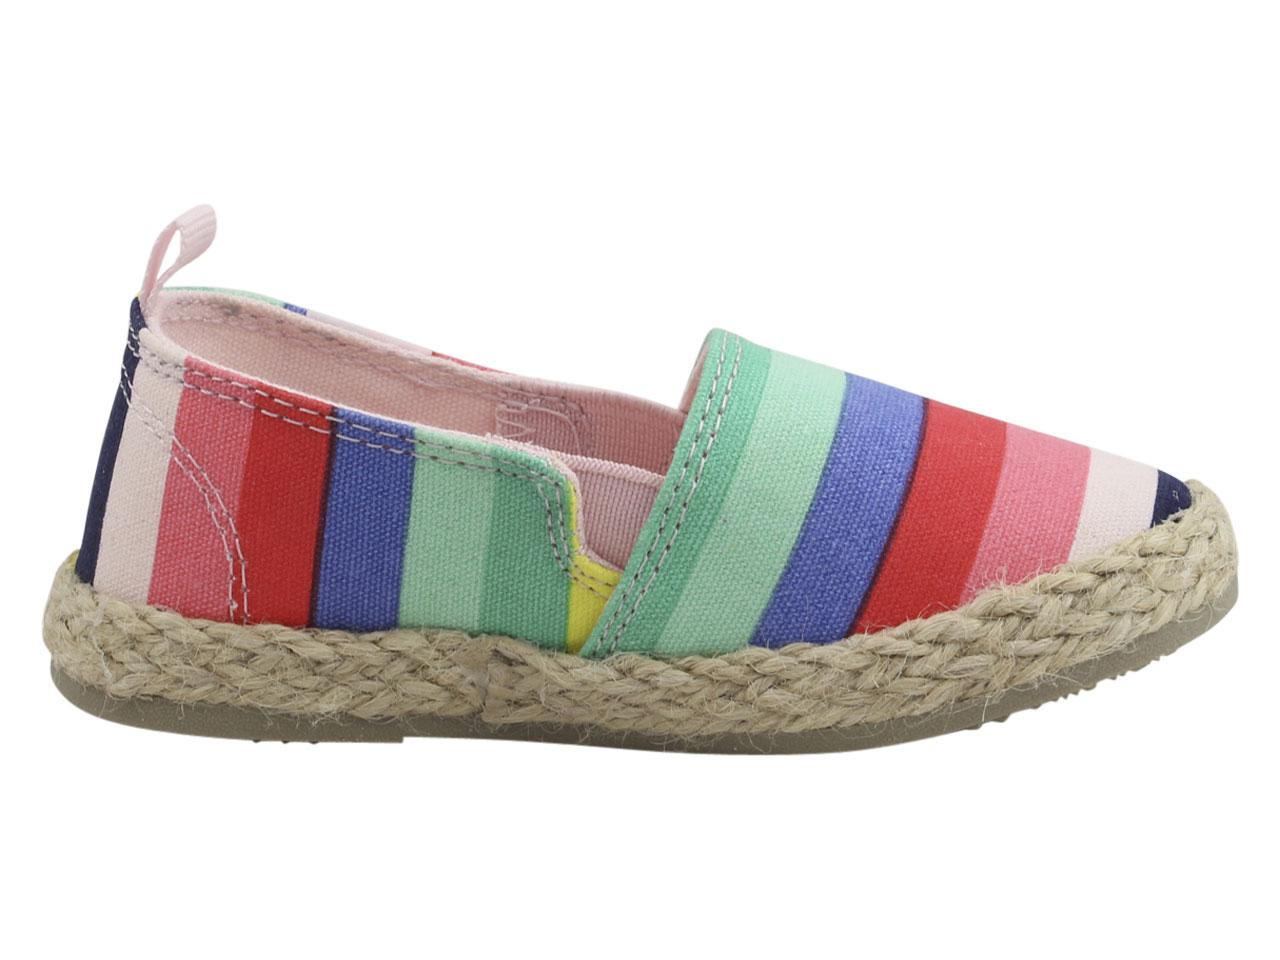 6c2d99ae38d Carter s Toddler Little Girl s Ari Espadrilles Loafers Shoes by Carter s. 12 34567